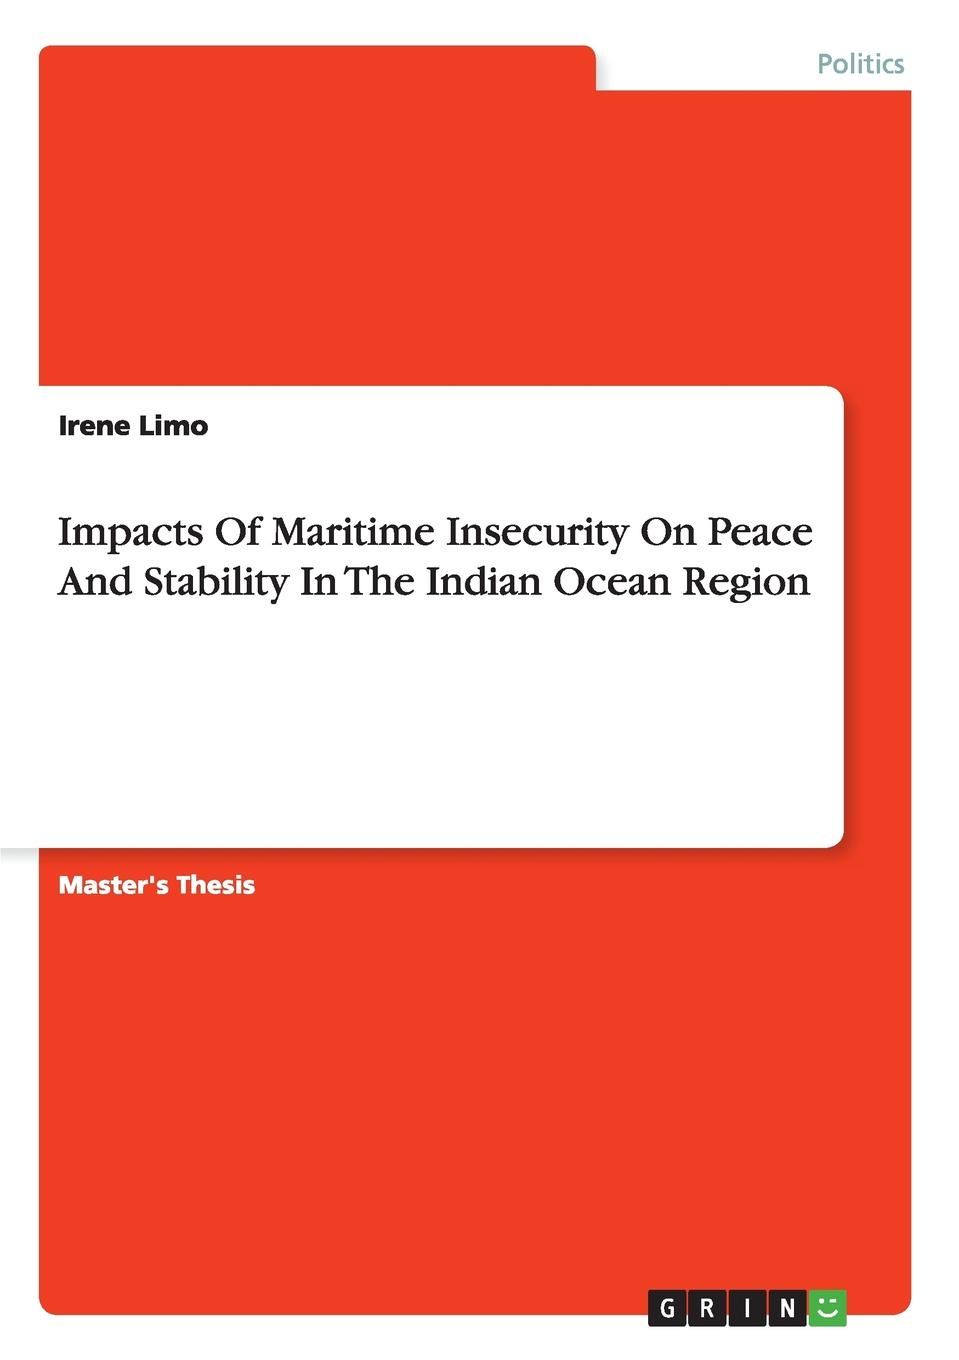 Irene Limo Impacts Of Maritime Insecurity On Peace And Stability In The Indian Ocean Region the maritime shipment of lng to northwest europe